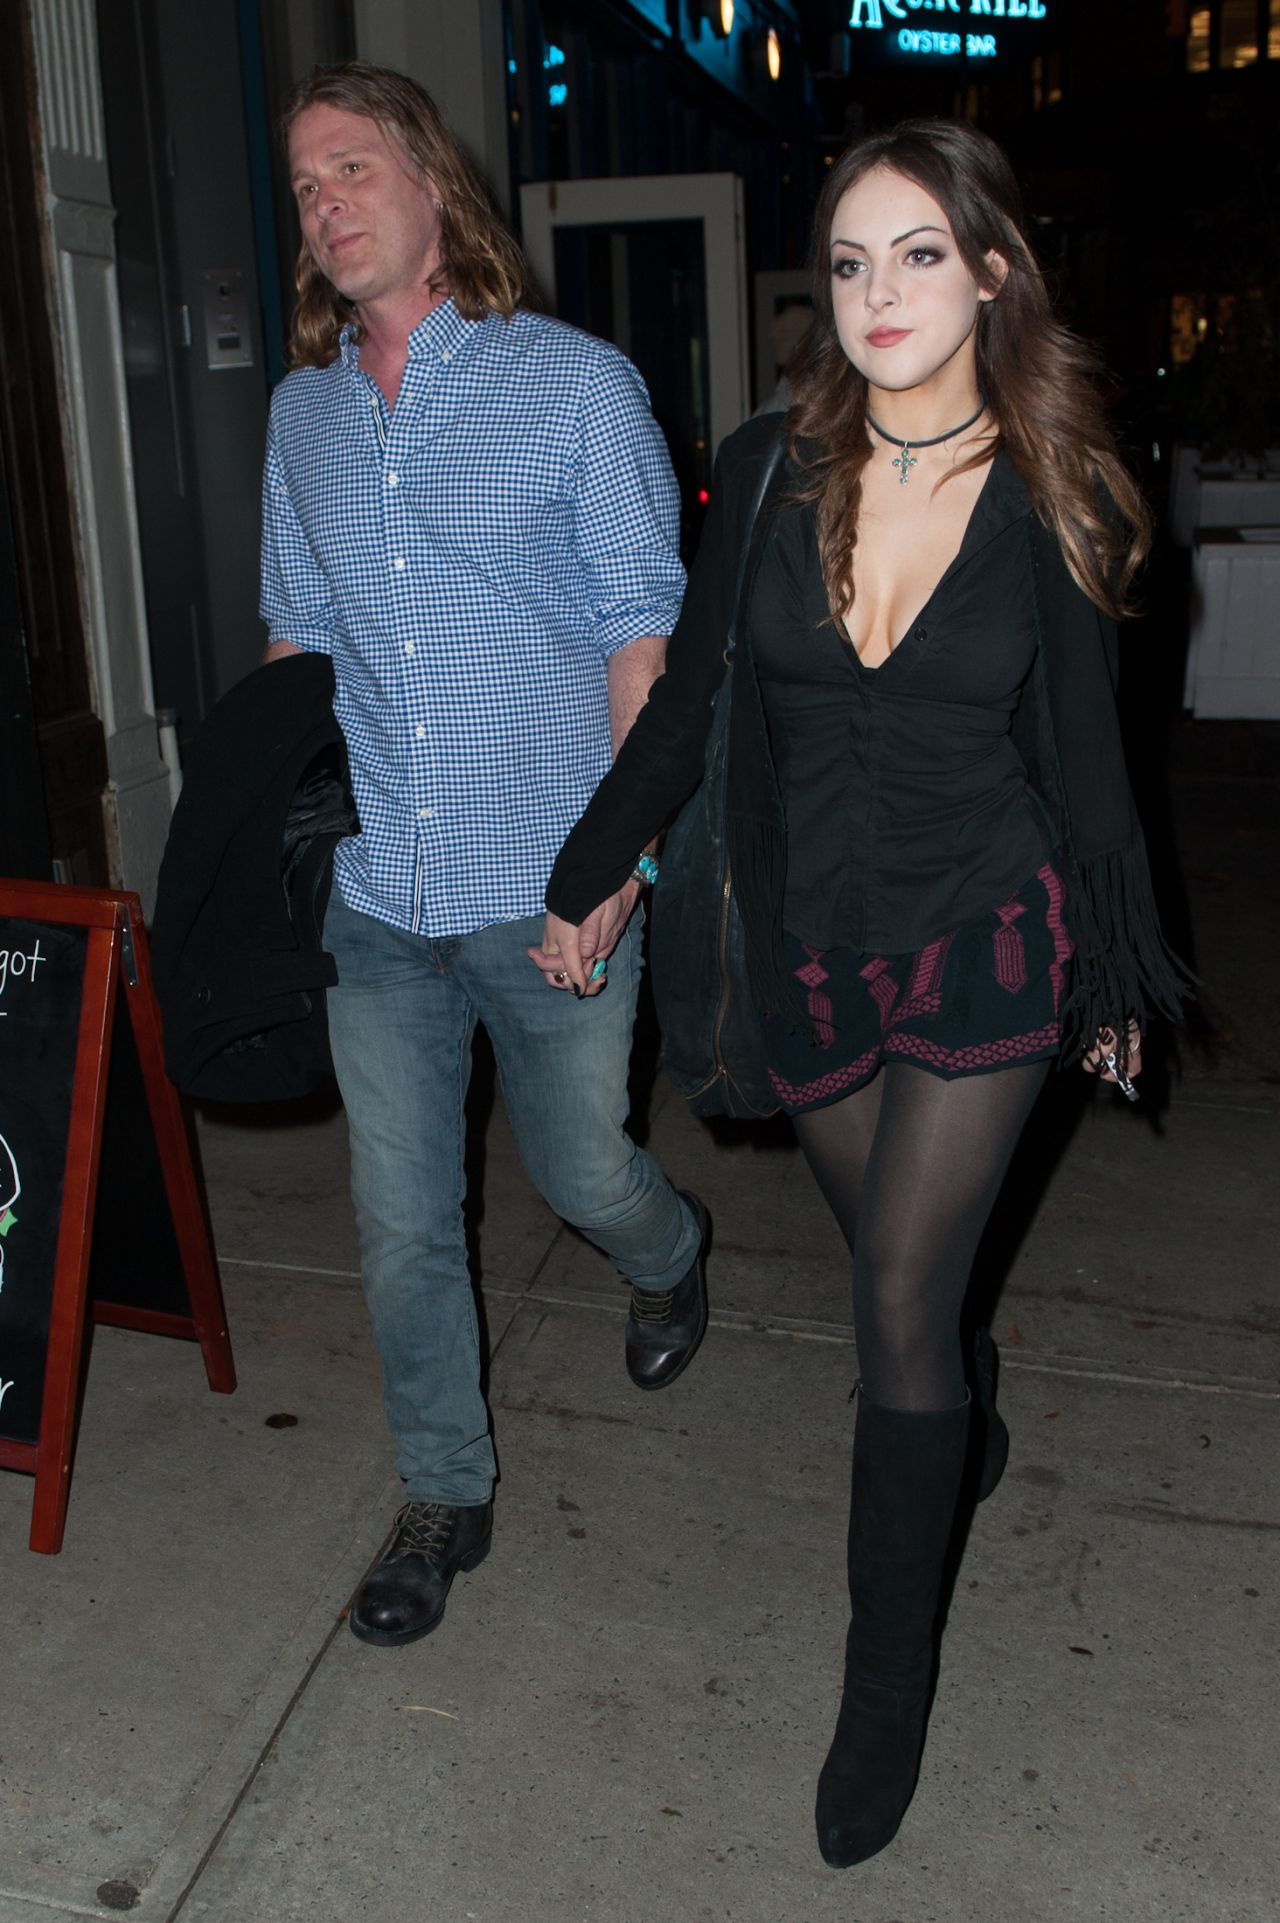 Elizabeth Gillies Night Out Style Out In Nyc November 2014